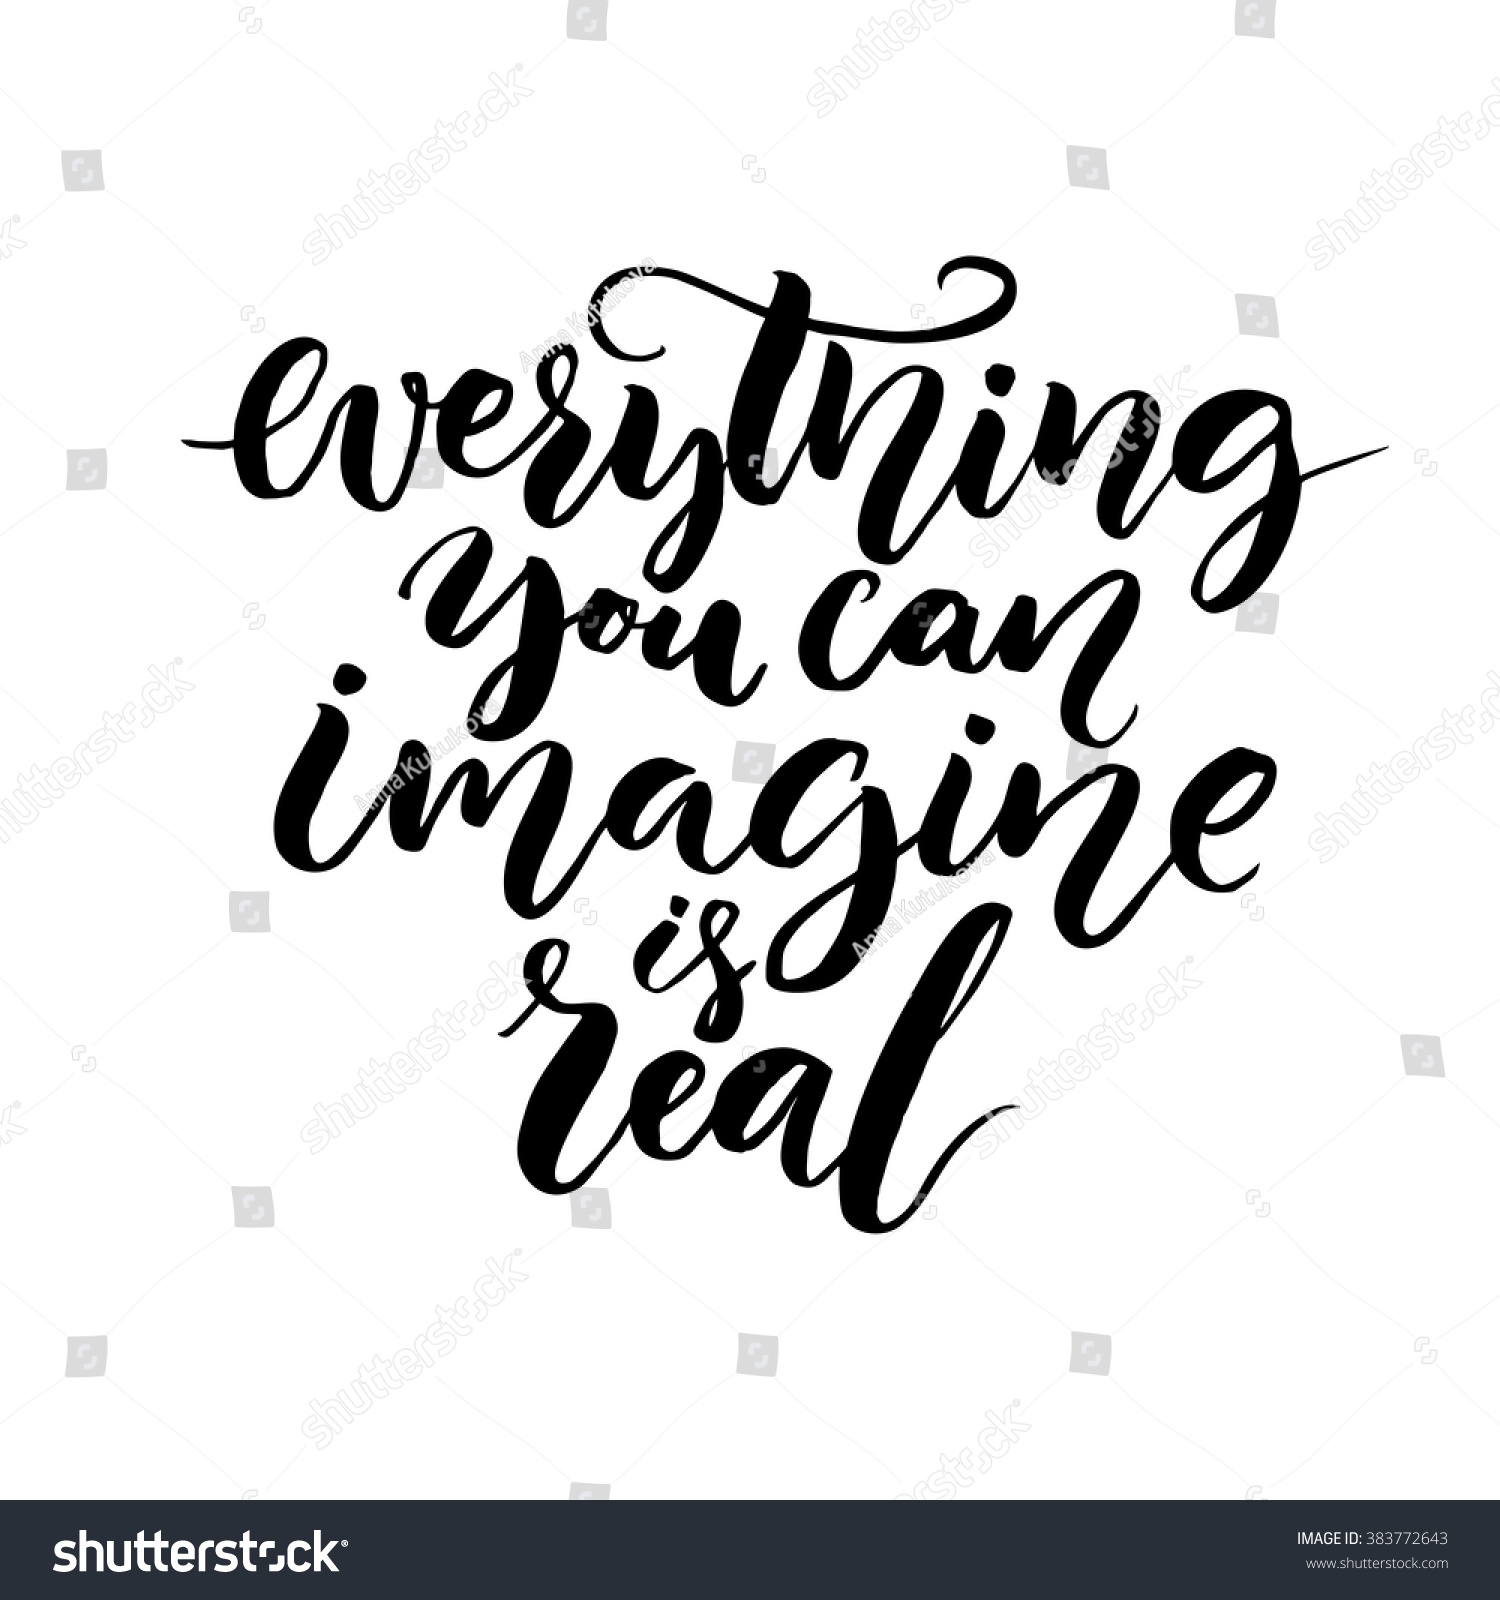 Everything you can imagine real modern stock vector Images of calligraphy